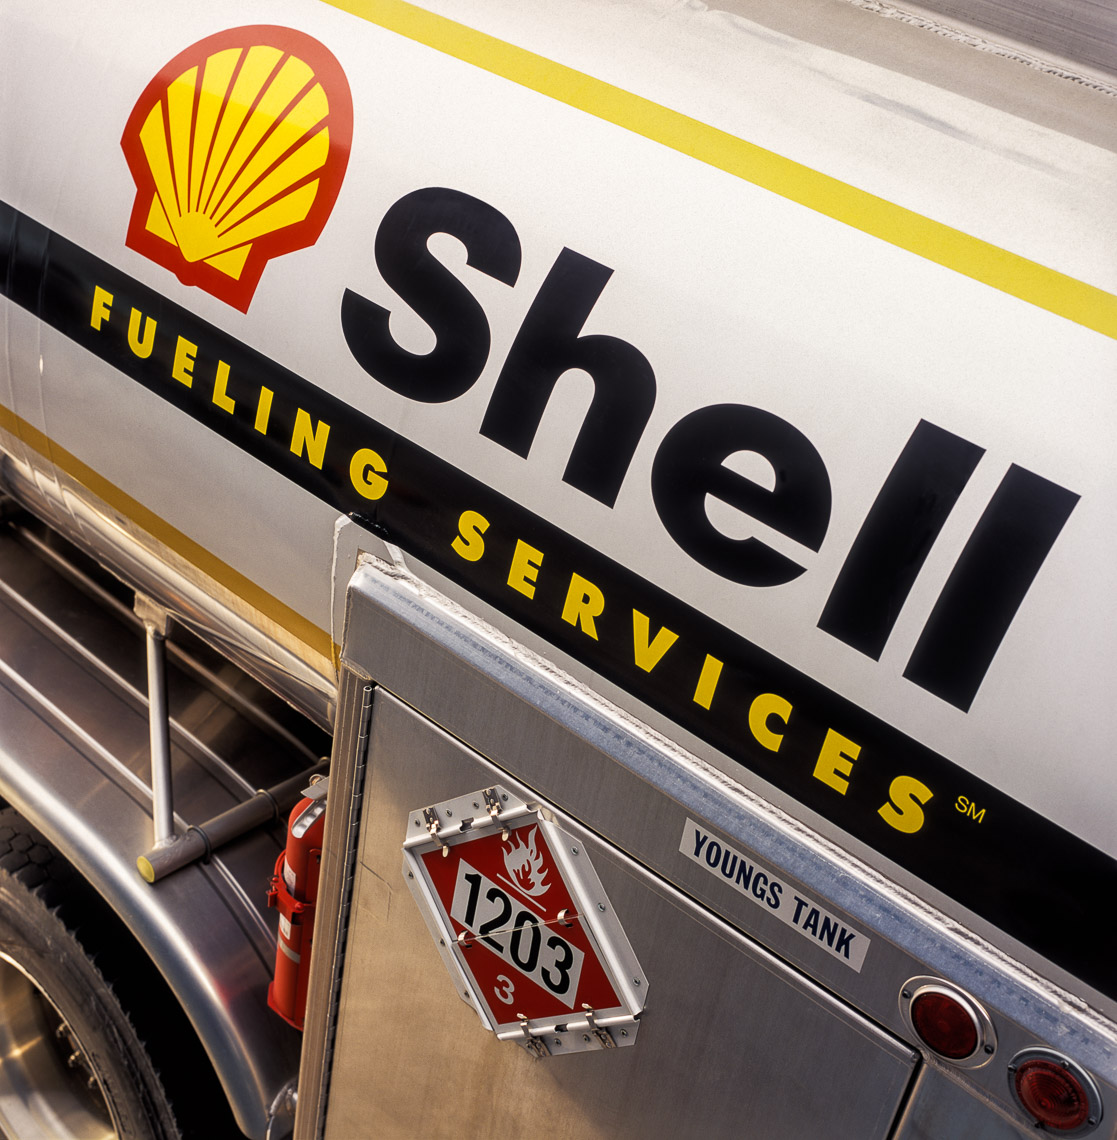 Shell Fuel Delivery Truck